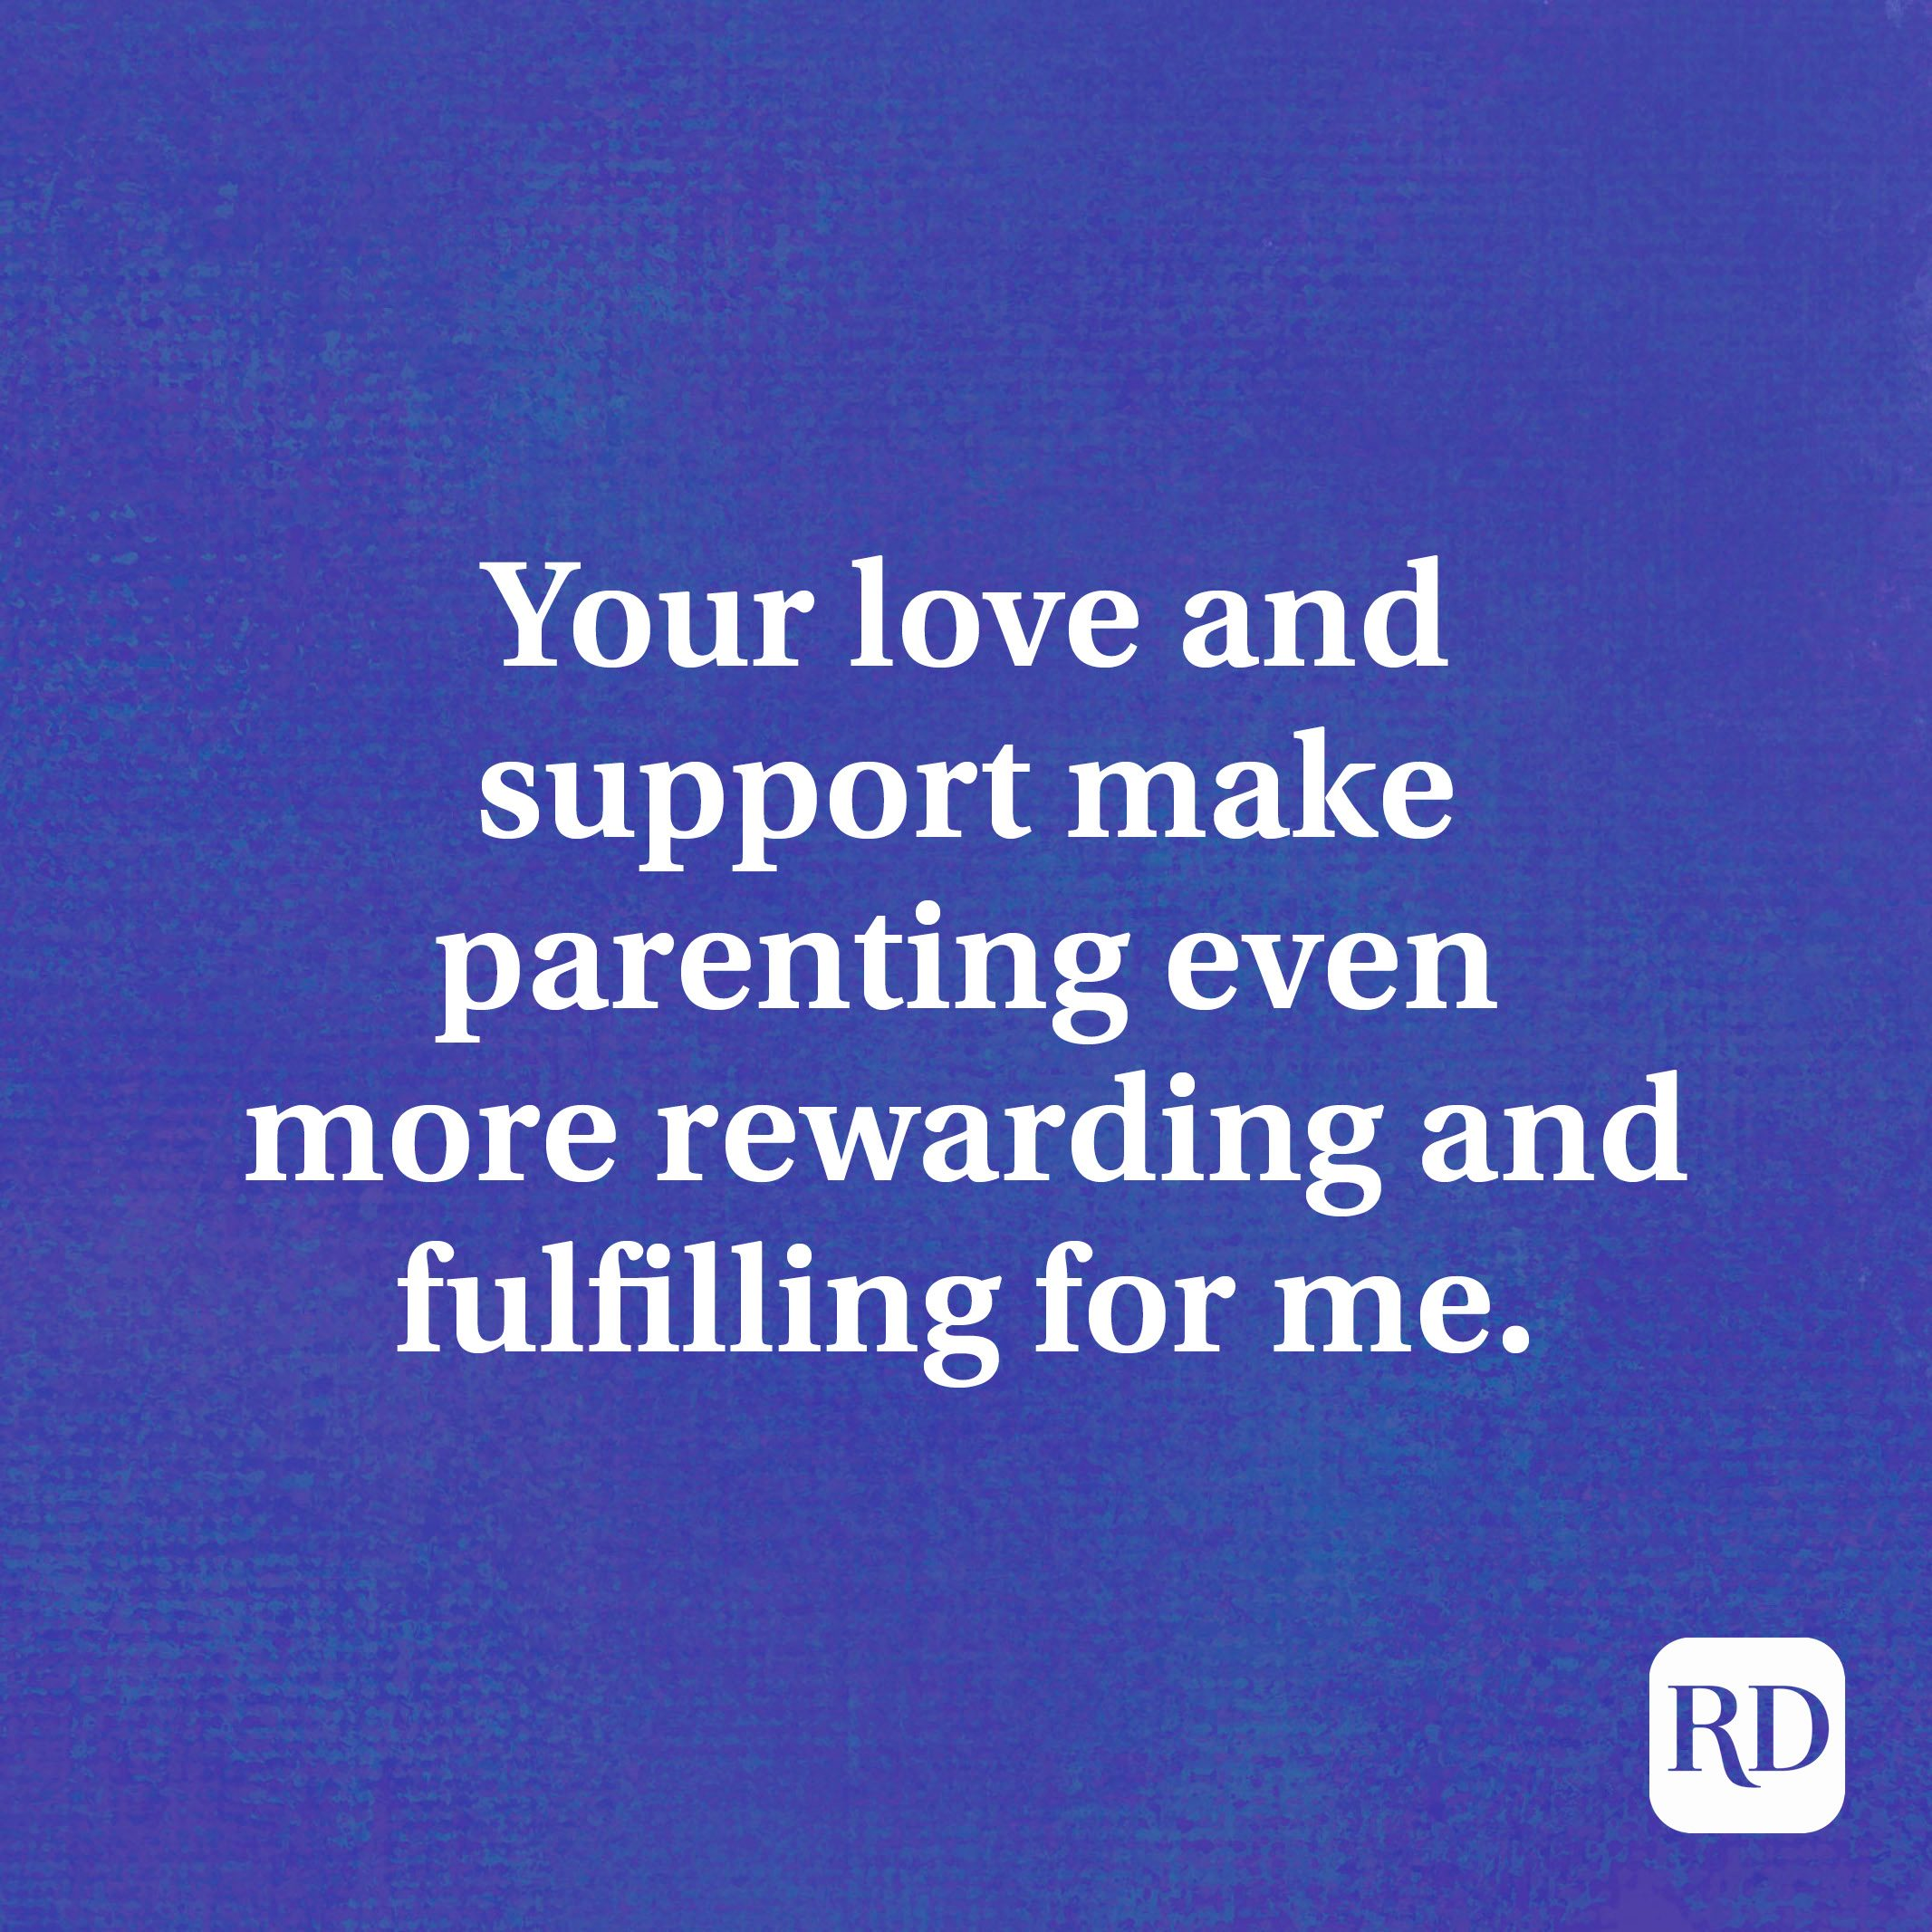 Your love and support make parenting even more rewarding and fulfilling for me.